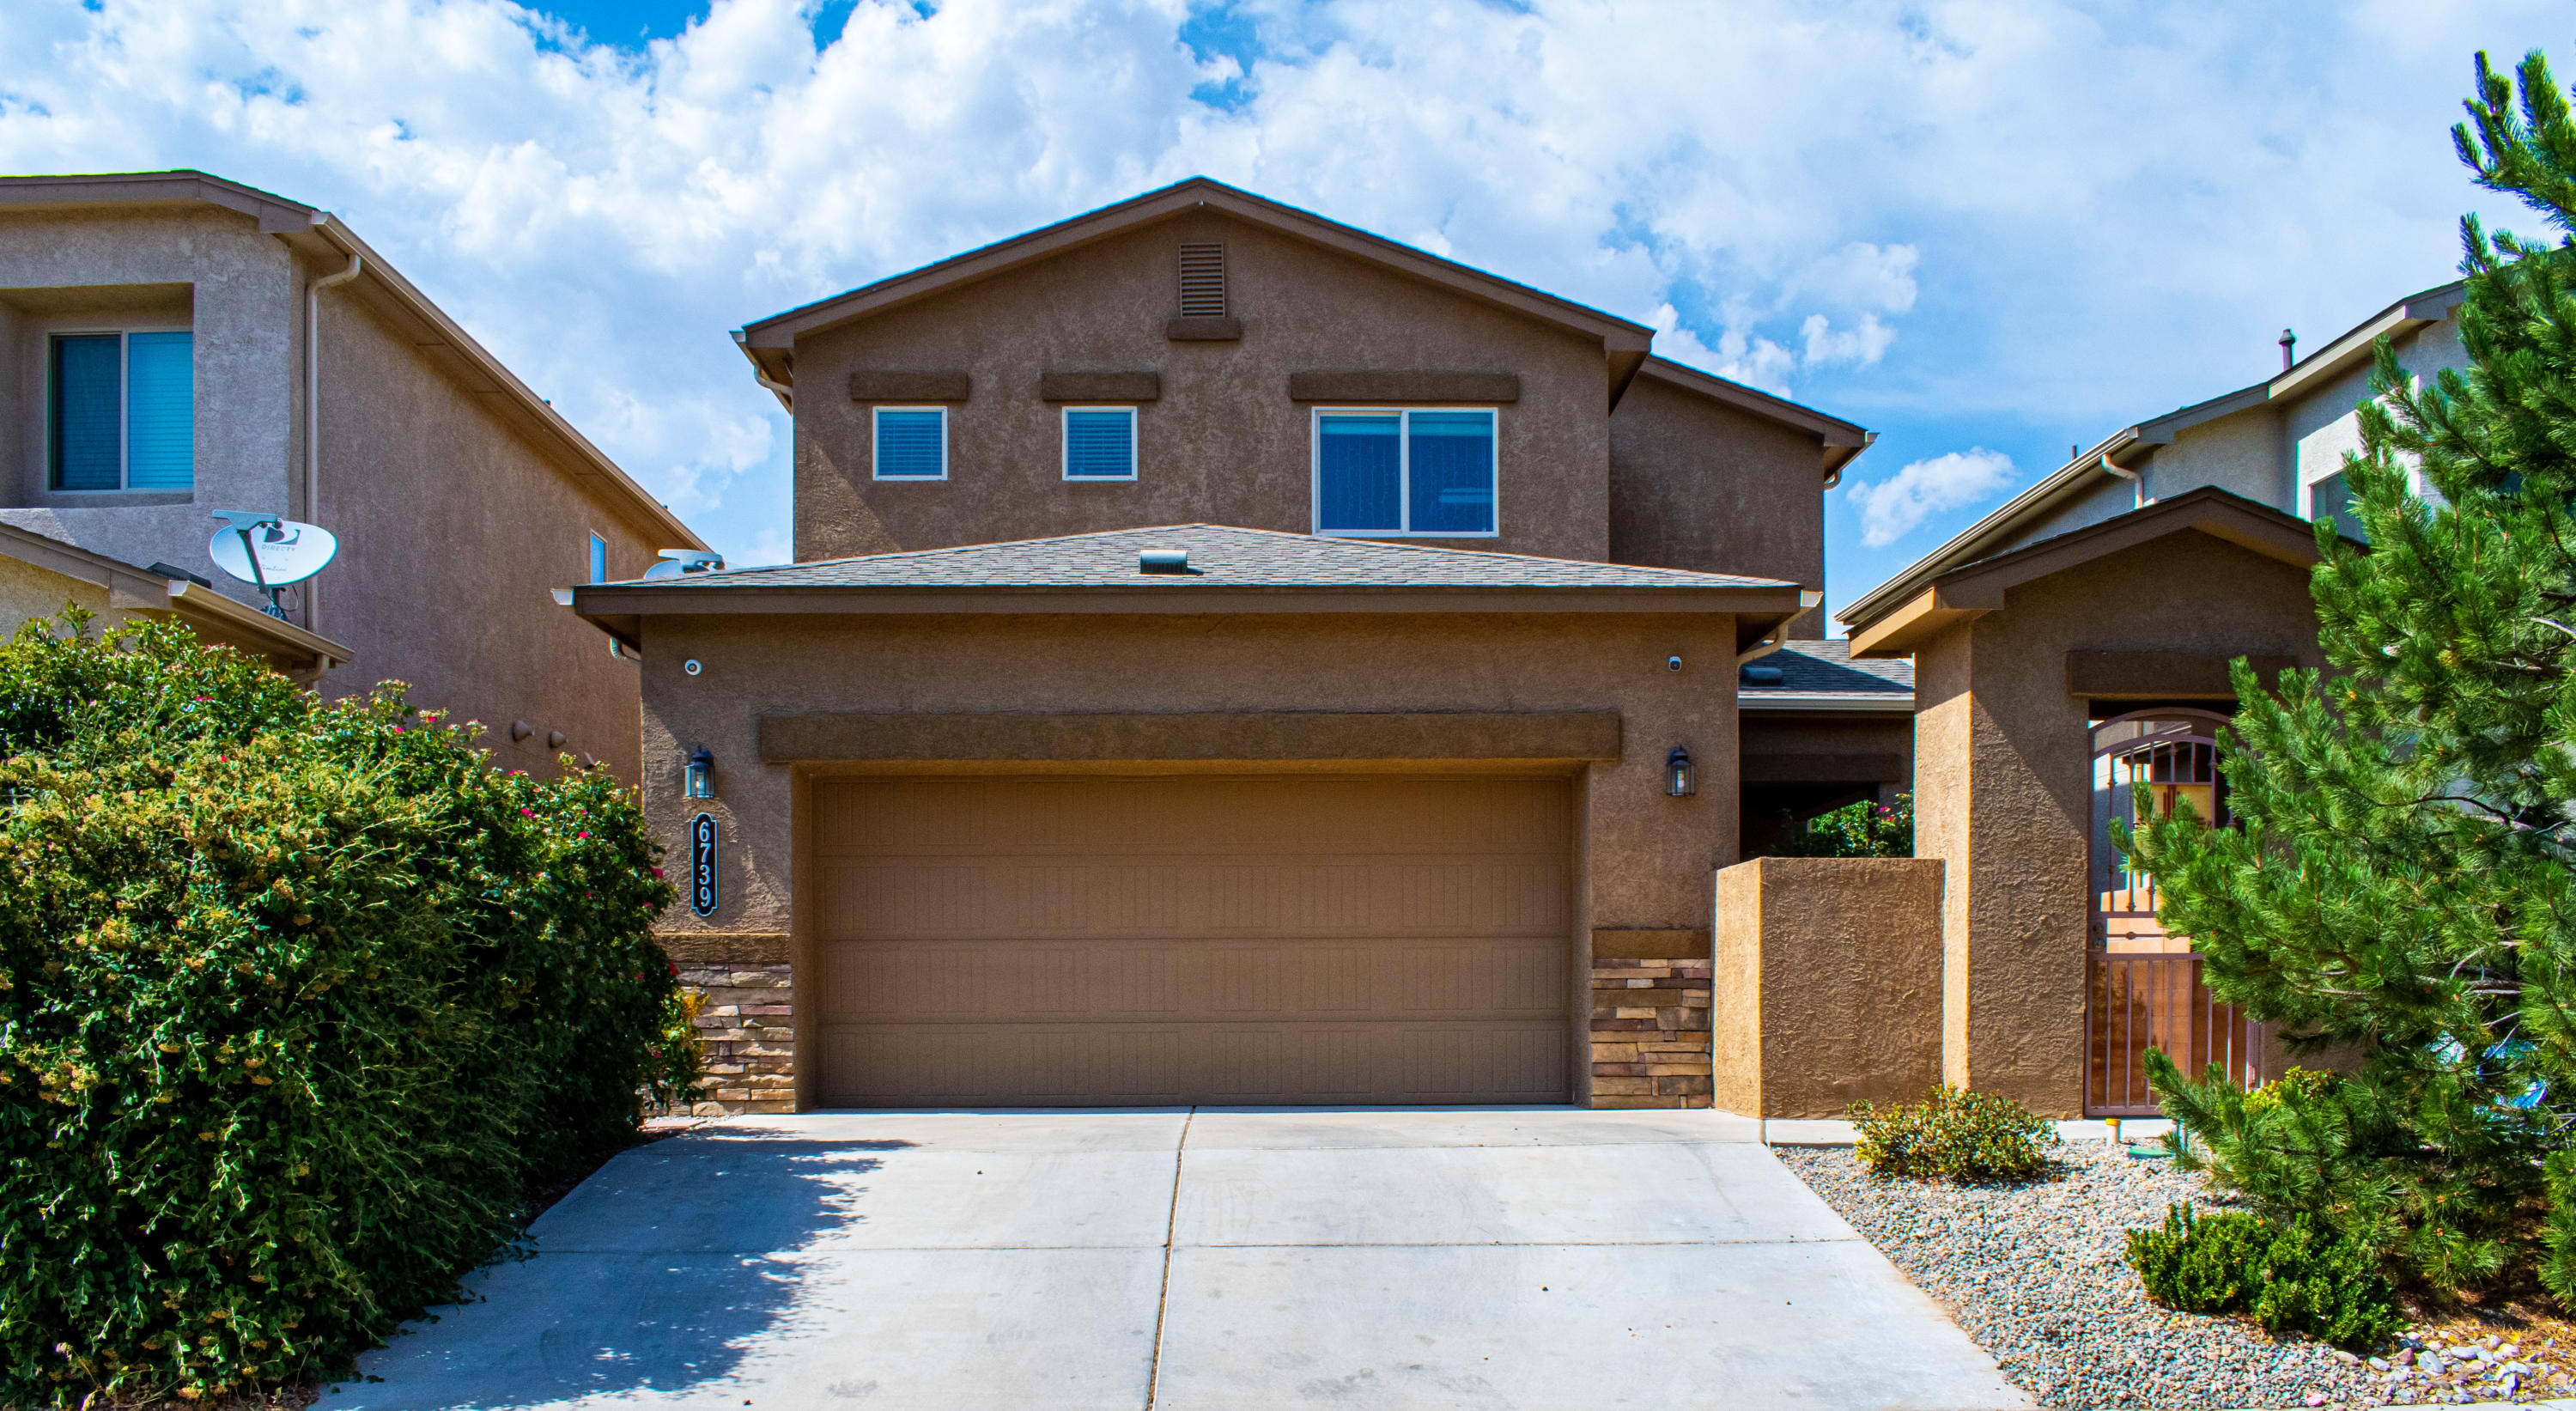 DR Horton Green Built home in Ventana Ranch....Private courtyard entry with custom wrought iron gate, 2 primary bedrooms, 1 downstairs with 3/4 bathroom and walk-in closet.  Other primary bedroom is upstairs and is well appointed with ceiling fan, bathroom with double-sinks and gigantic walk-in closet.  Laundry room is conveniently located upstairs.  Tankless water heater and solar panels help with the energy efficiency of this home.  The kitchen is sure to please the cook with beautiful cabinetry, large pantry and fingerprint resistant appliances.Conveniently located close to schools, restaurants, shopping, Montano & Paseo. Refrigerated air helps keep this home comfortable in these hot, sunny days!  This beauty will sell quickly!  Will you be the lucky new owner?